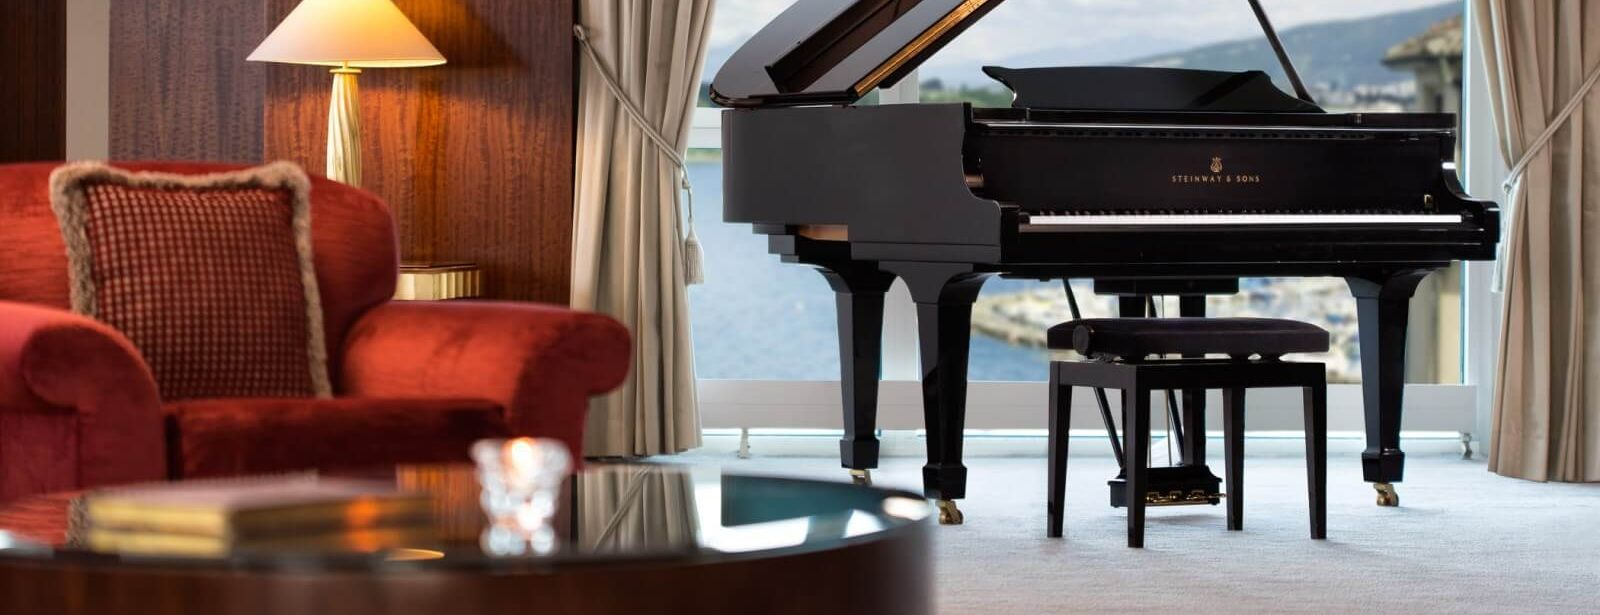 1600×900-Royal-Penthouse-Suite—Imperial-Steinway-Grand-Piano-Med